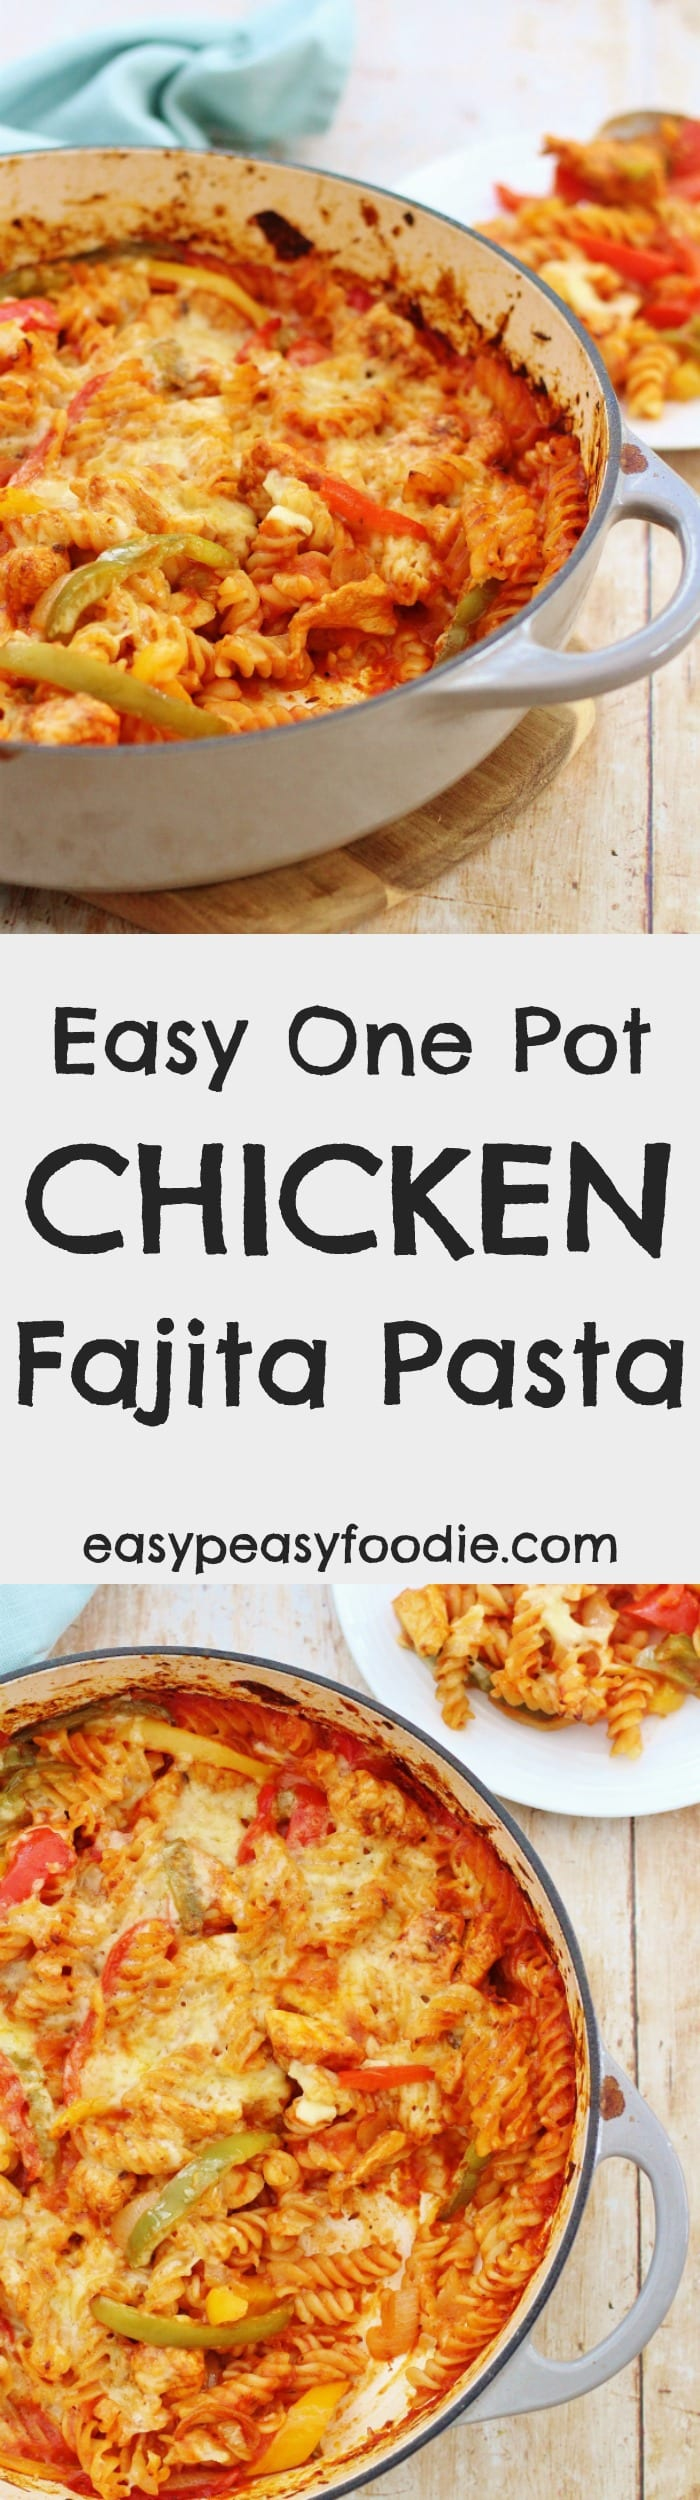 Delicious, quick and family friendly, this Easy One Pot Chicken Fajita Pasta Bake is the perfect midweek meal. The pasta is cooked 'al dente', the chicken is tender, the fajita sauce just coats the pasta beautifully and the whole lot is covered with oozing, melted cheese. And the best part? It's all done in one dish, so this recipe is easy on the washing up too! #onepot #chicken #fajita #pasta #chickenfajitapasta #easy #easydinners #midweekmeals #familydinners #easypeasyfoodie